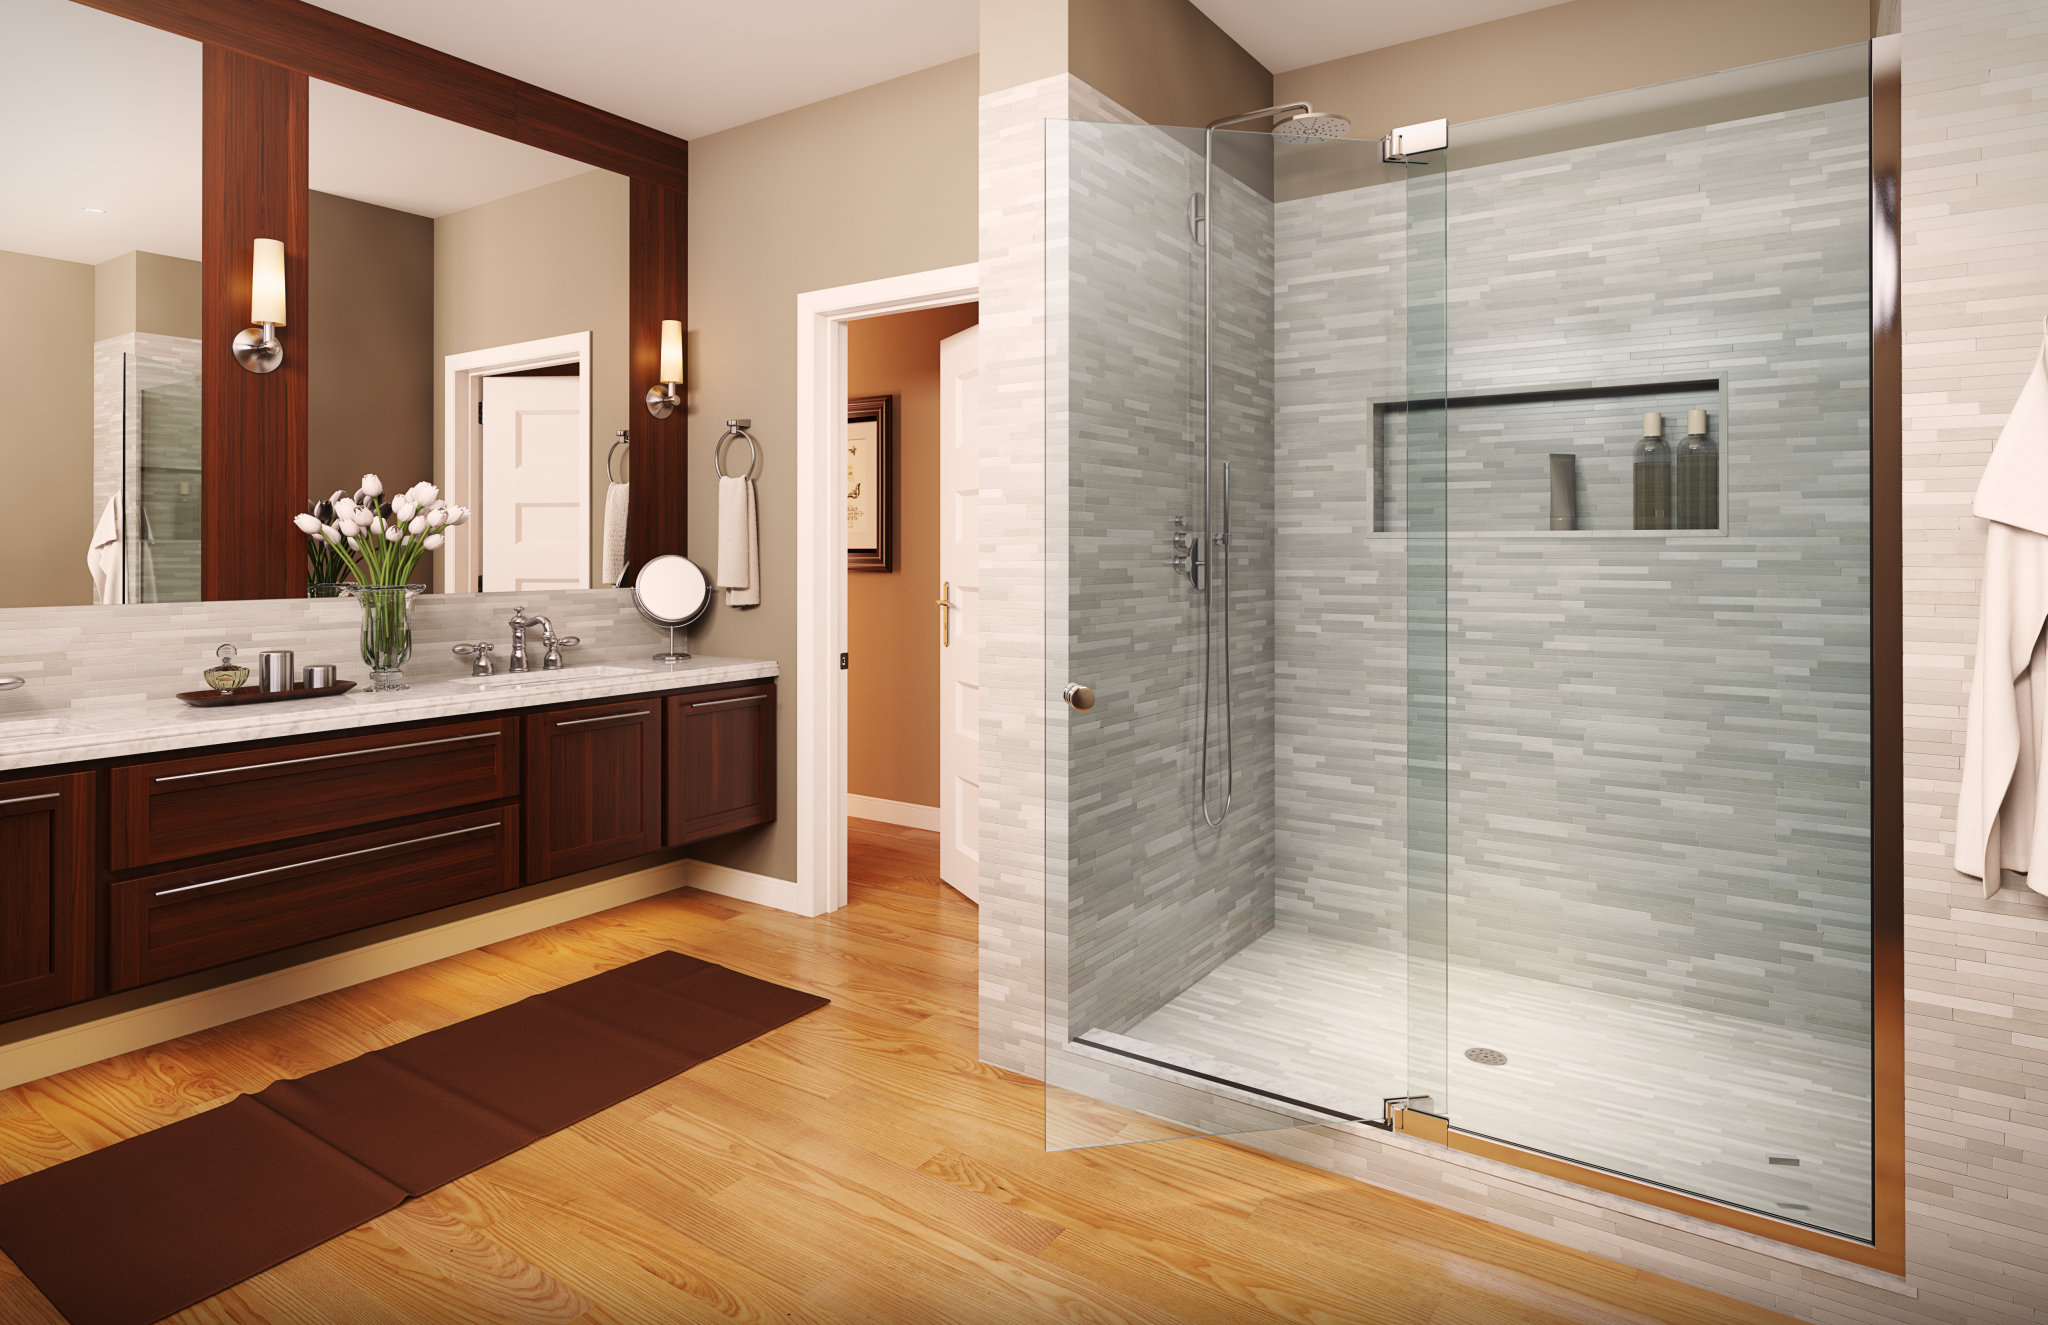 Bathroom trends a concord carpenter - New bathrooms designs trends ...